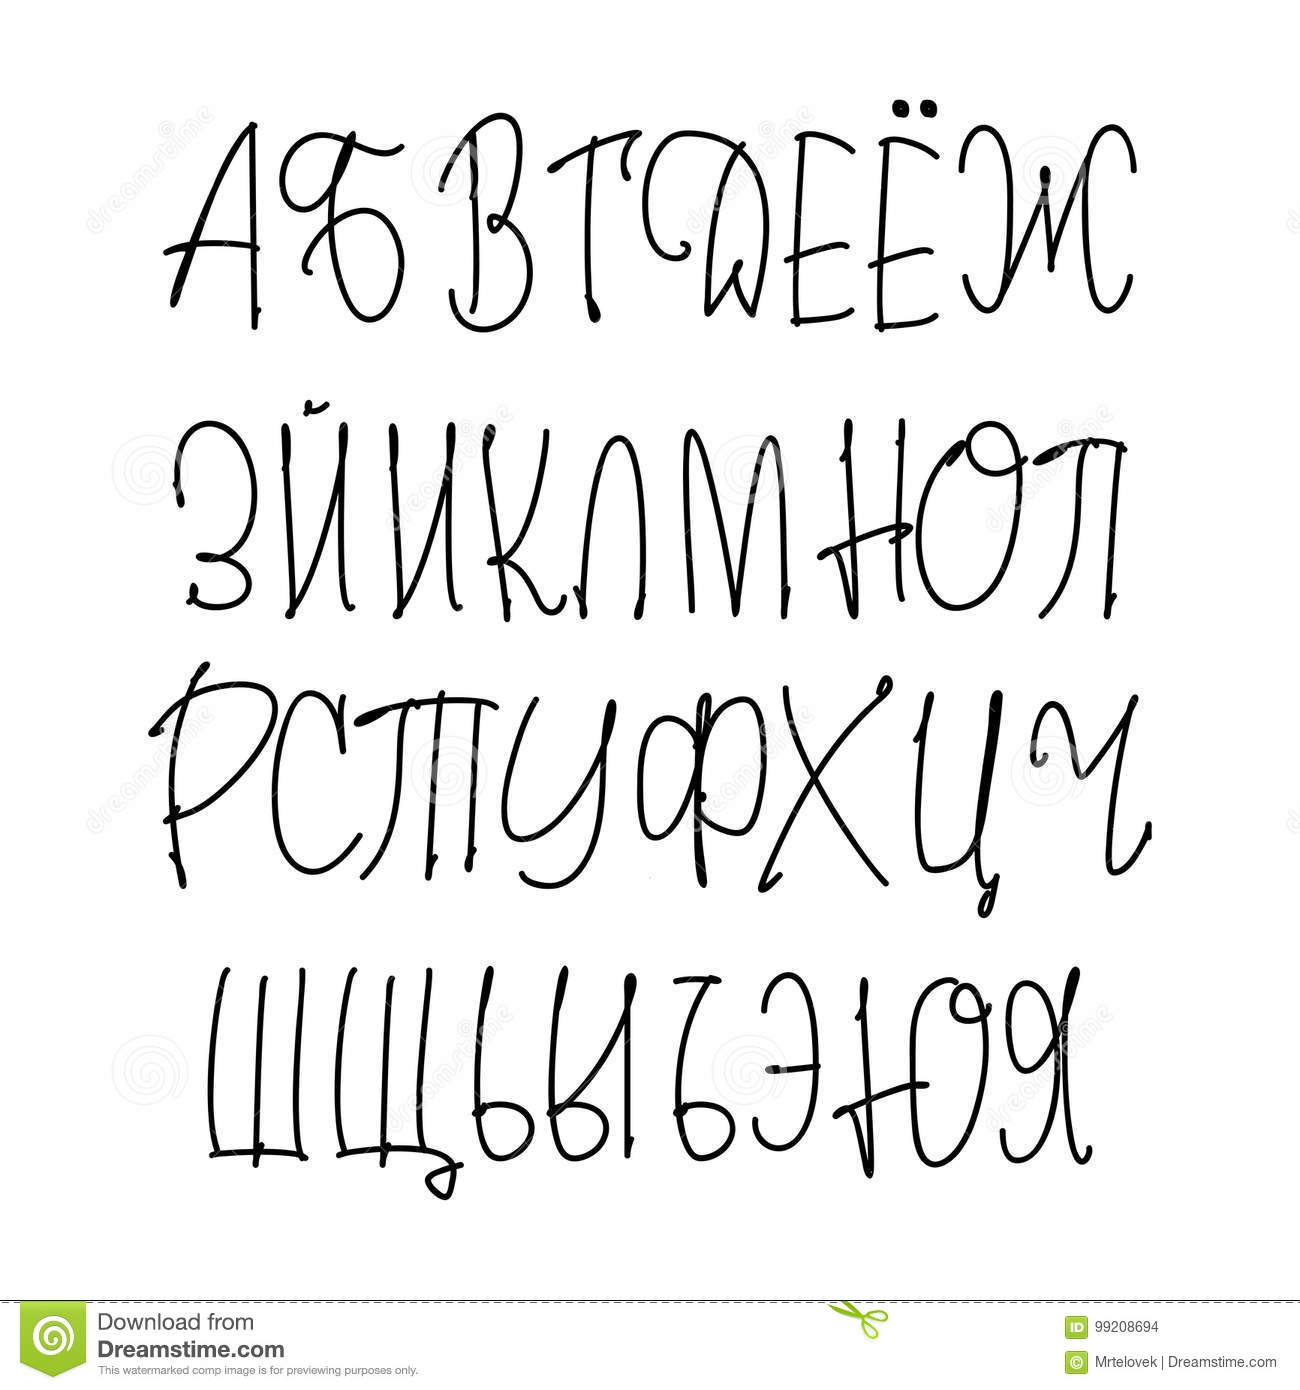 Cyrillic Alphabet Title In Russian Cyrillic Set Of Uppercase